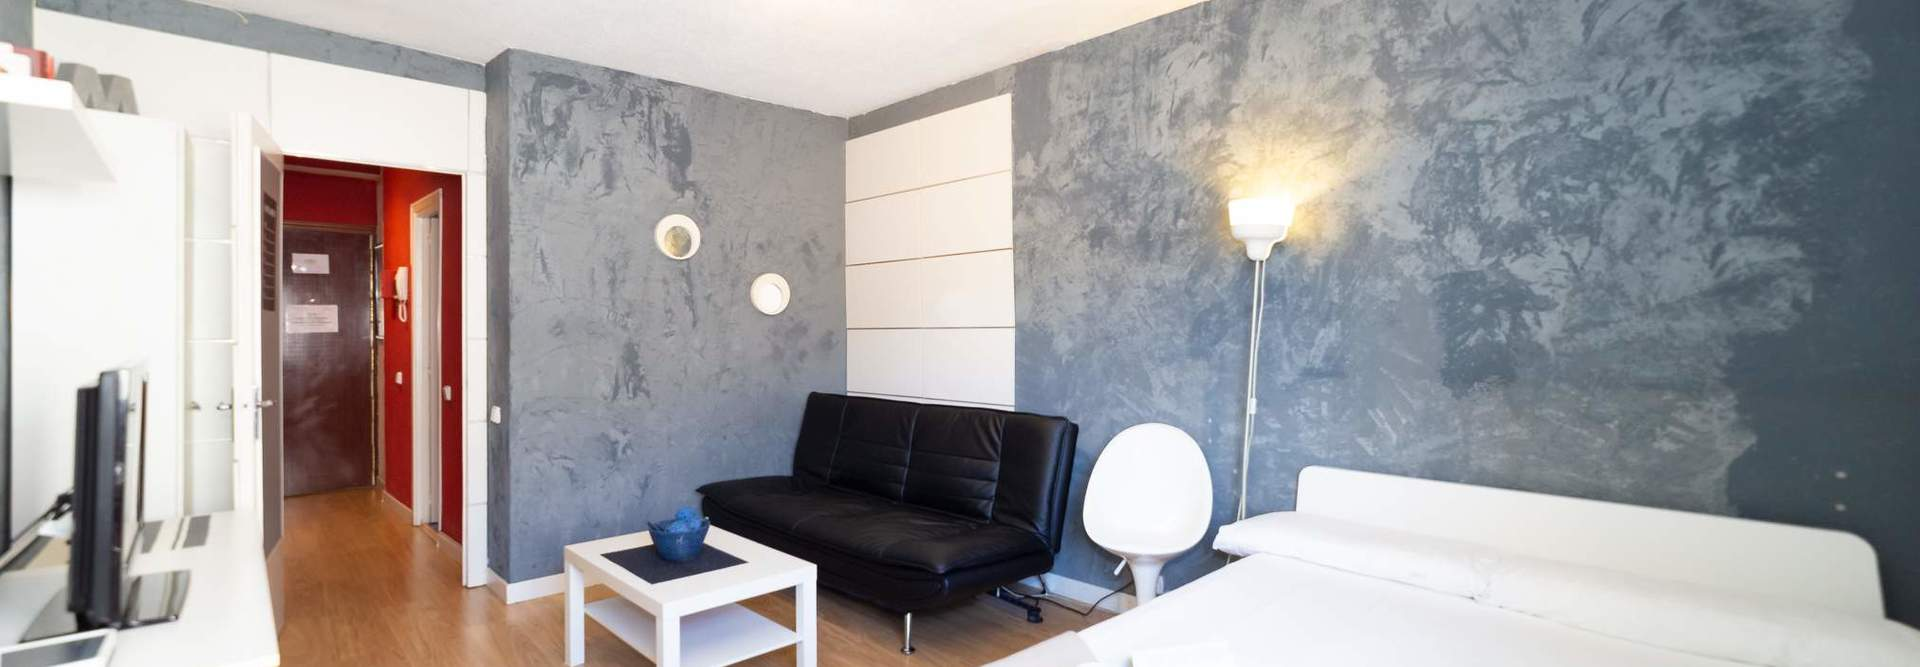 Home alquiler apartamentos madrid mad4rent 42